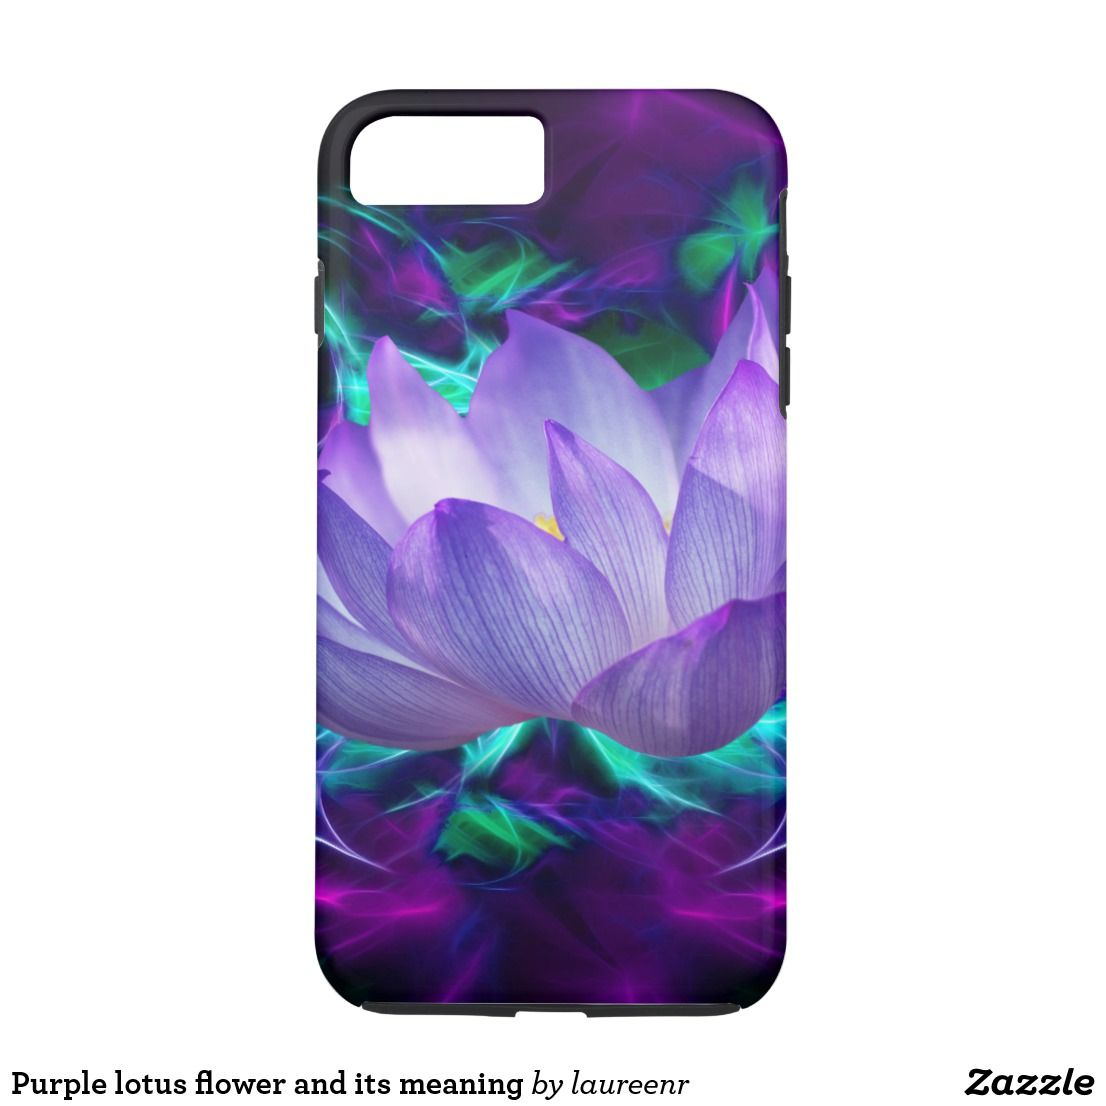 Purple lotus flower and its meaning iphone 8 plus7 plus case mightylinksfo